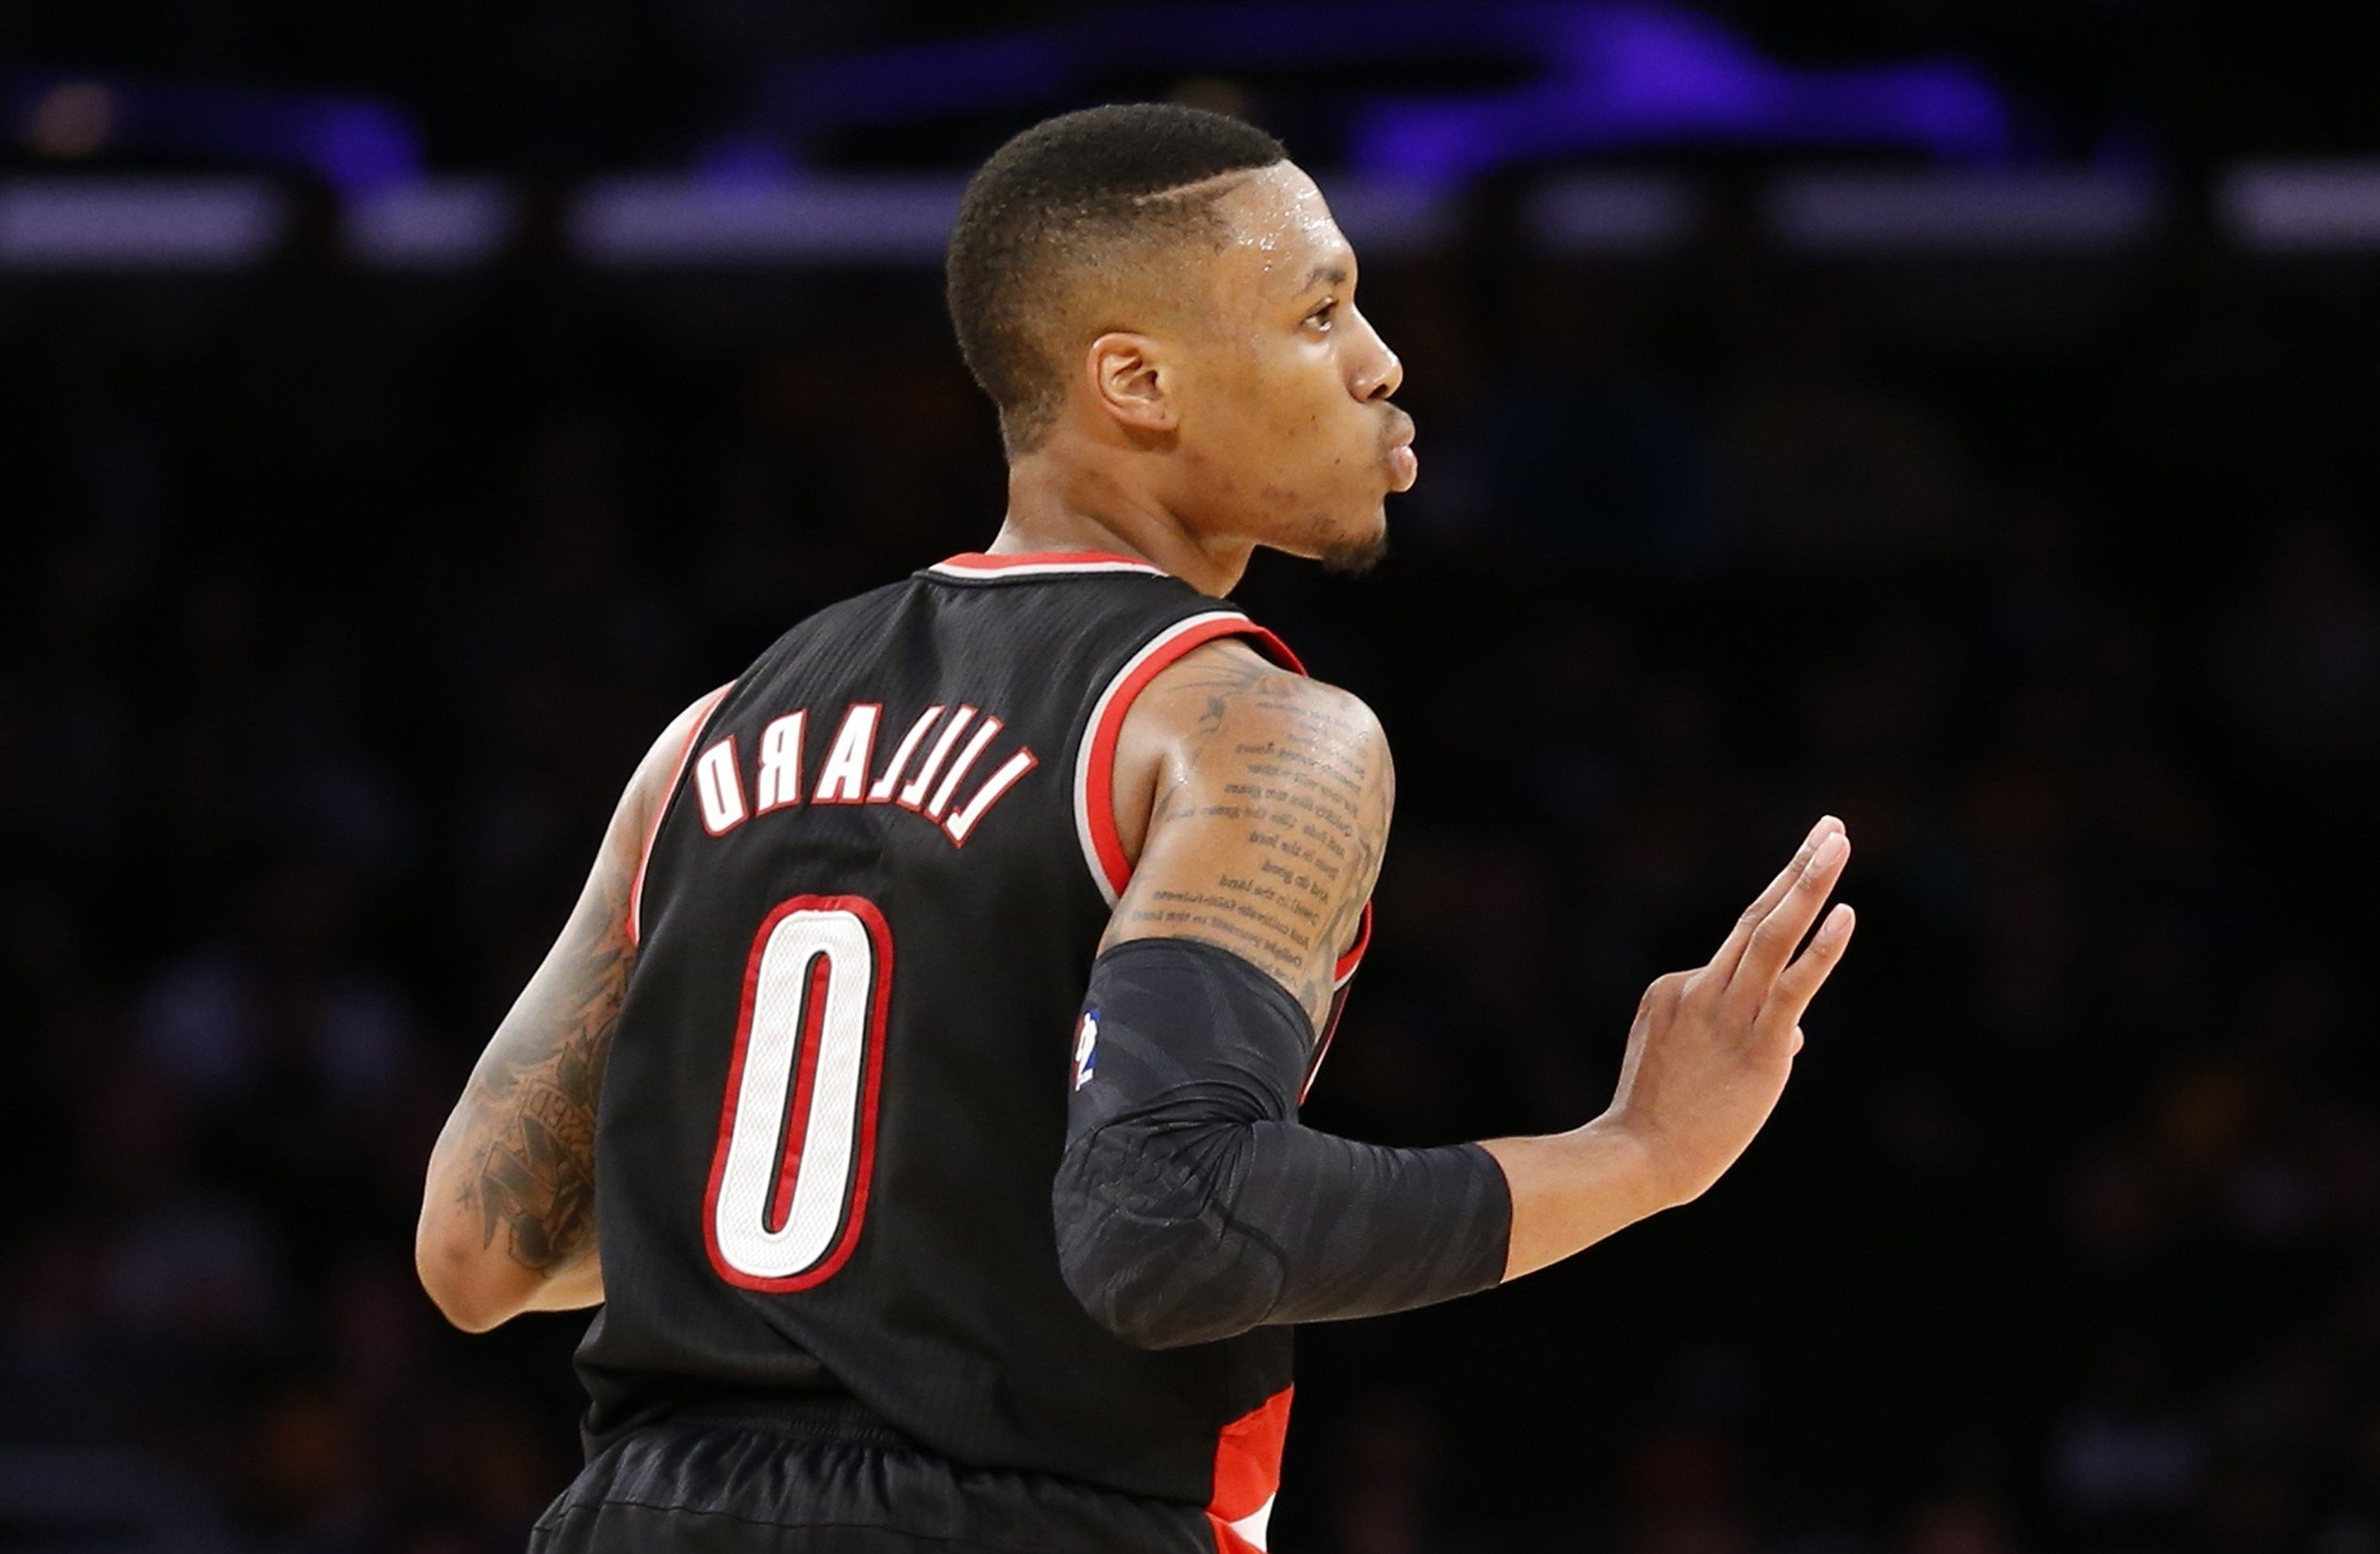 The Best Damian Lillard Haircut Mohawk Haircuts Models Ideas Pictures